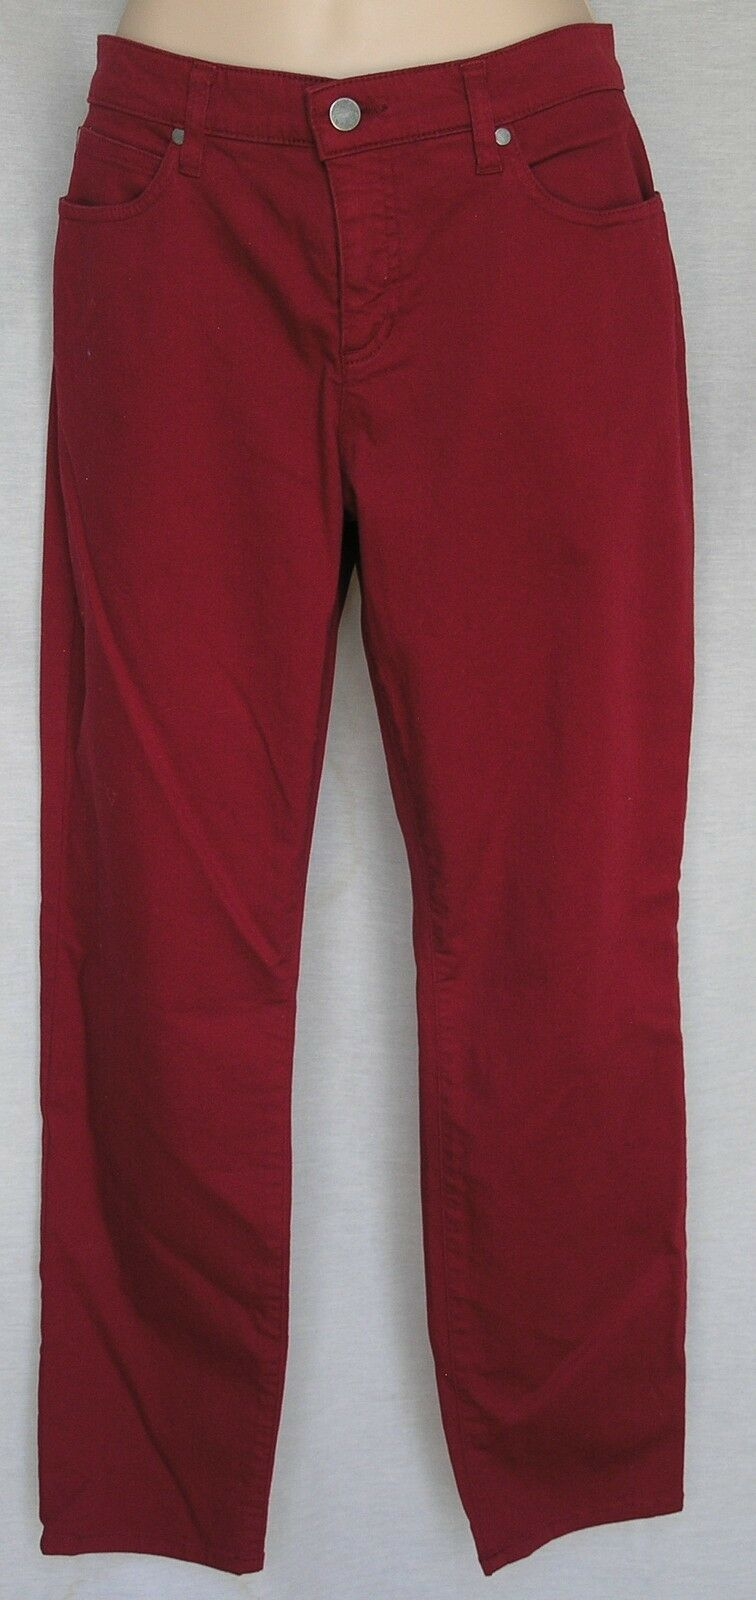 EILEEN FISHER GARMENT-DYED ORGANIC COTTON STRETCH TWILL SLIM ANKLE JEAN 6